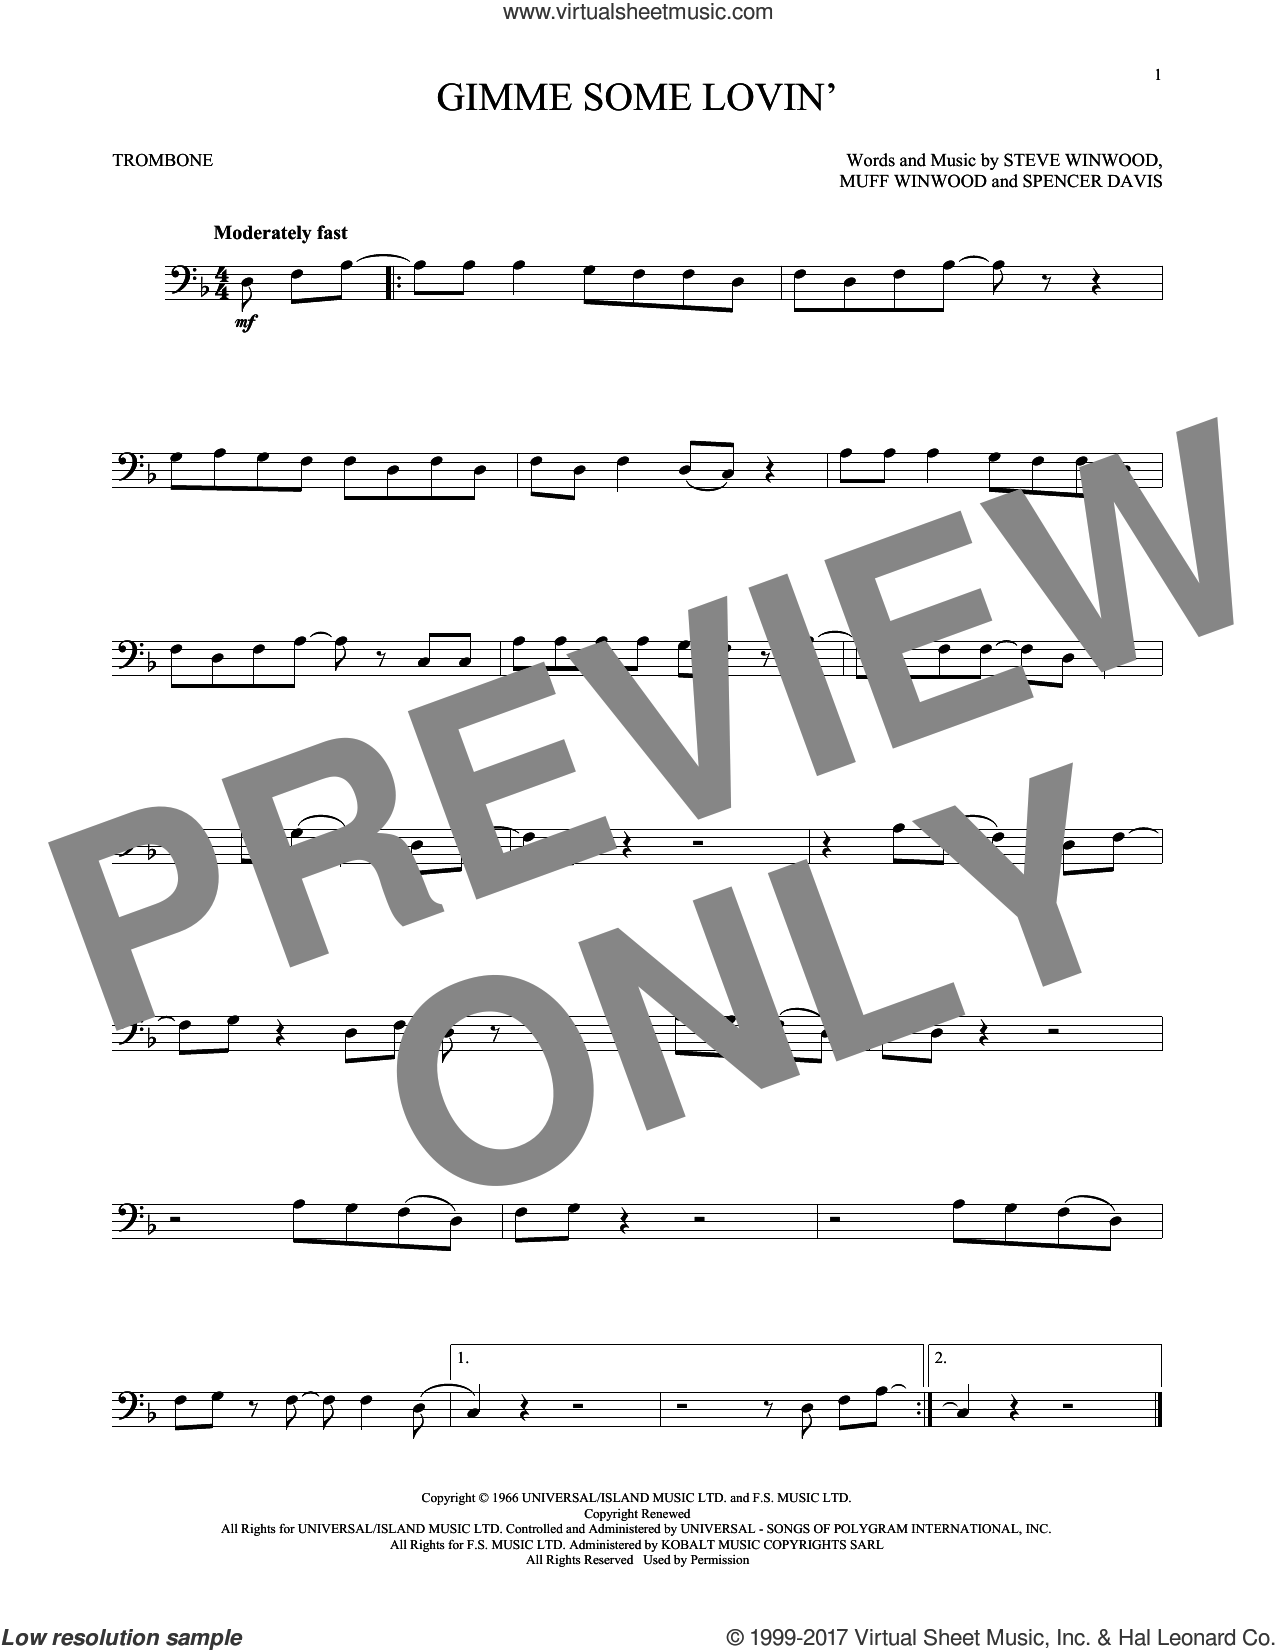 Gimme Some Lovin' sheet music for trombone solo by The Spencer Davis Group, Muff Winwood, Spencer Davis and Steve Winwood, intermediate skill level